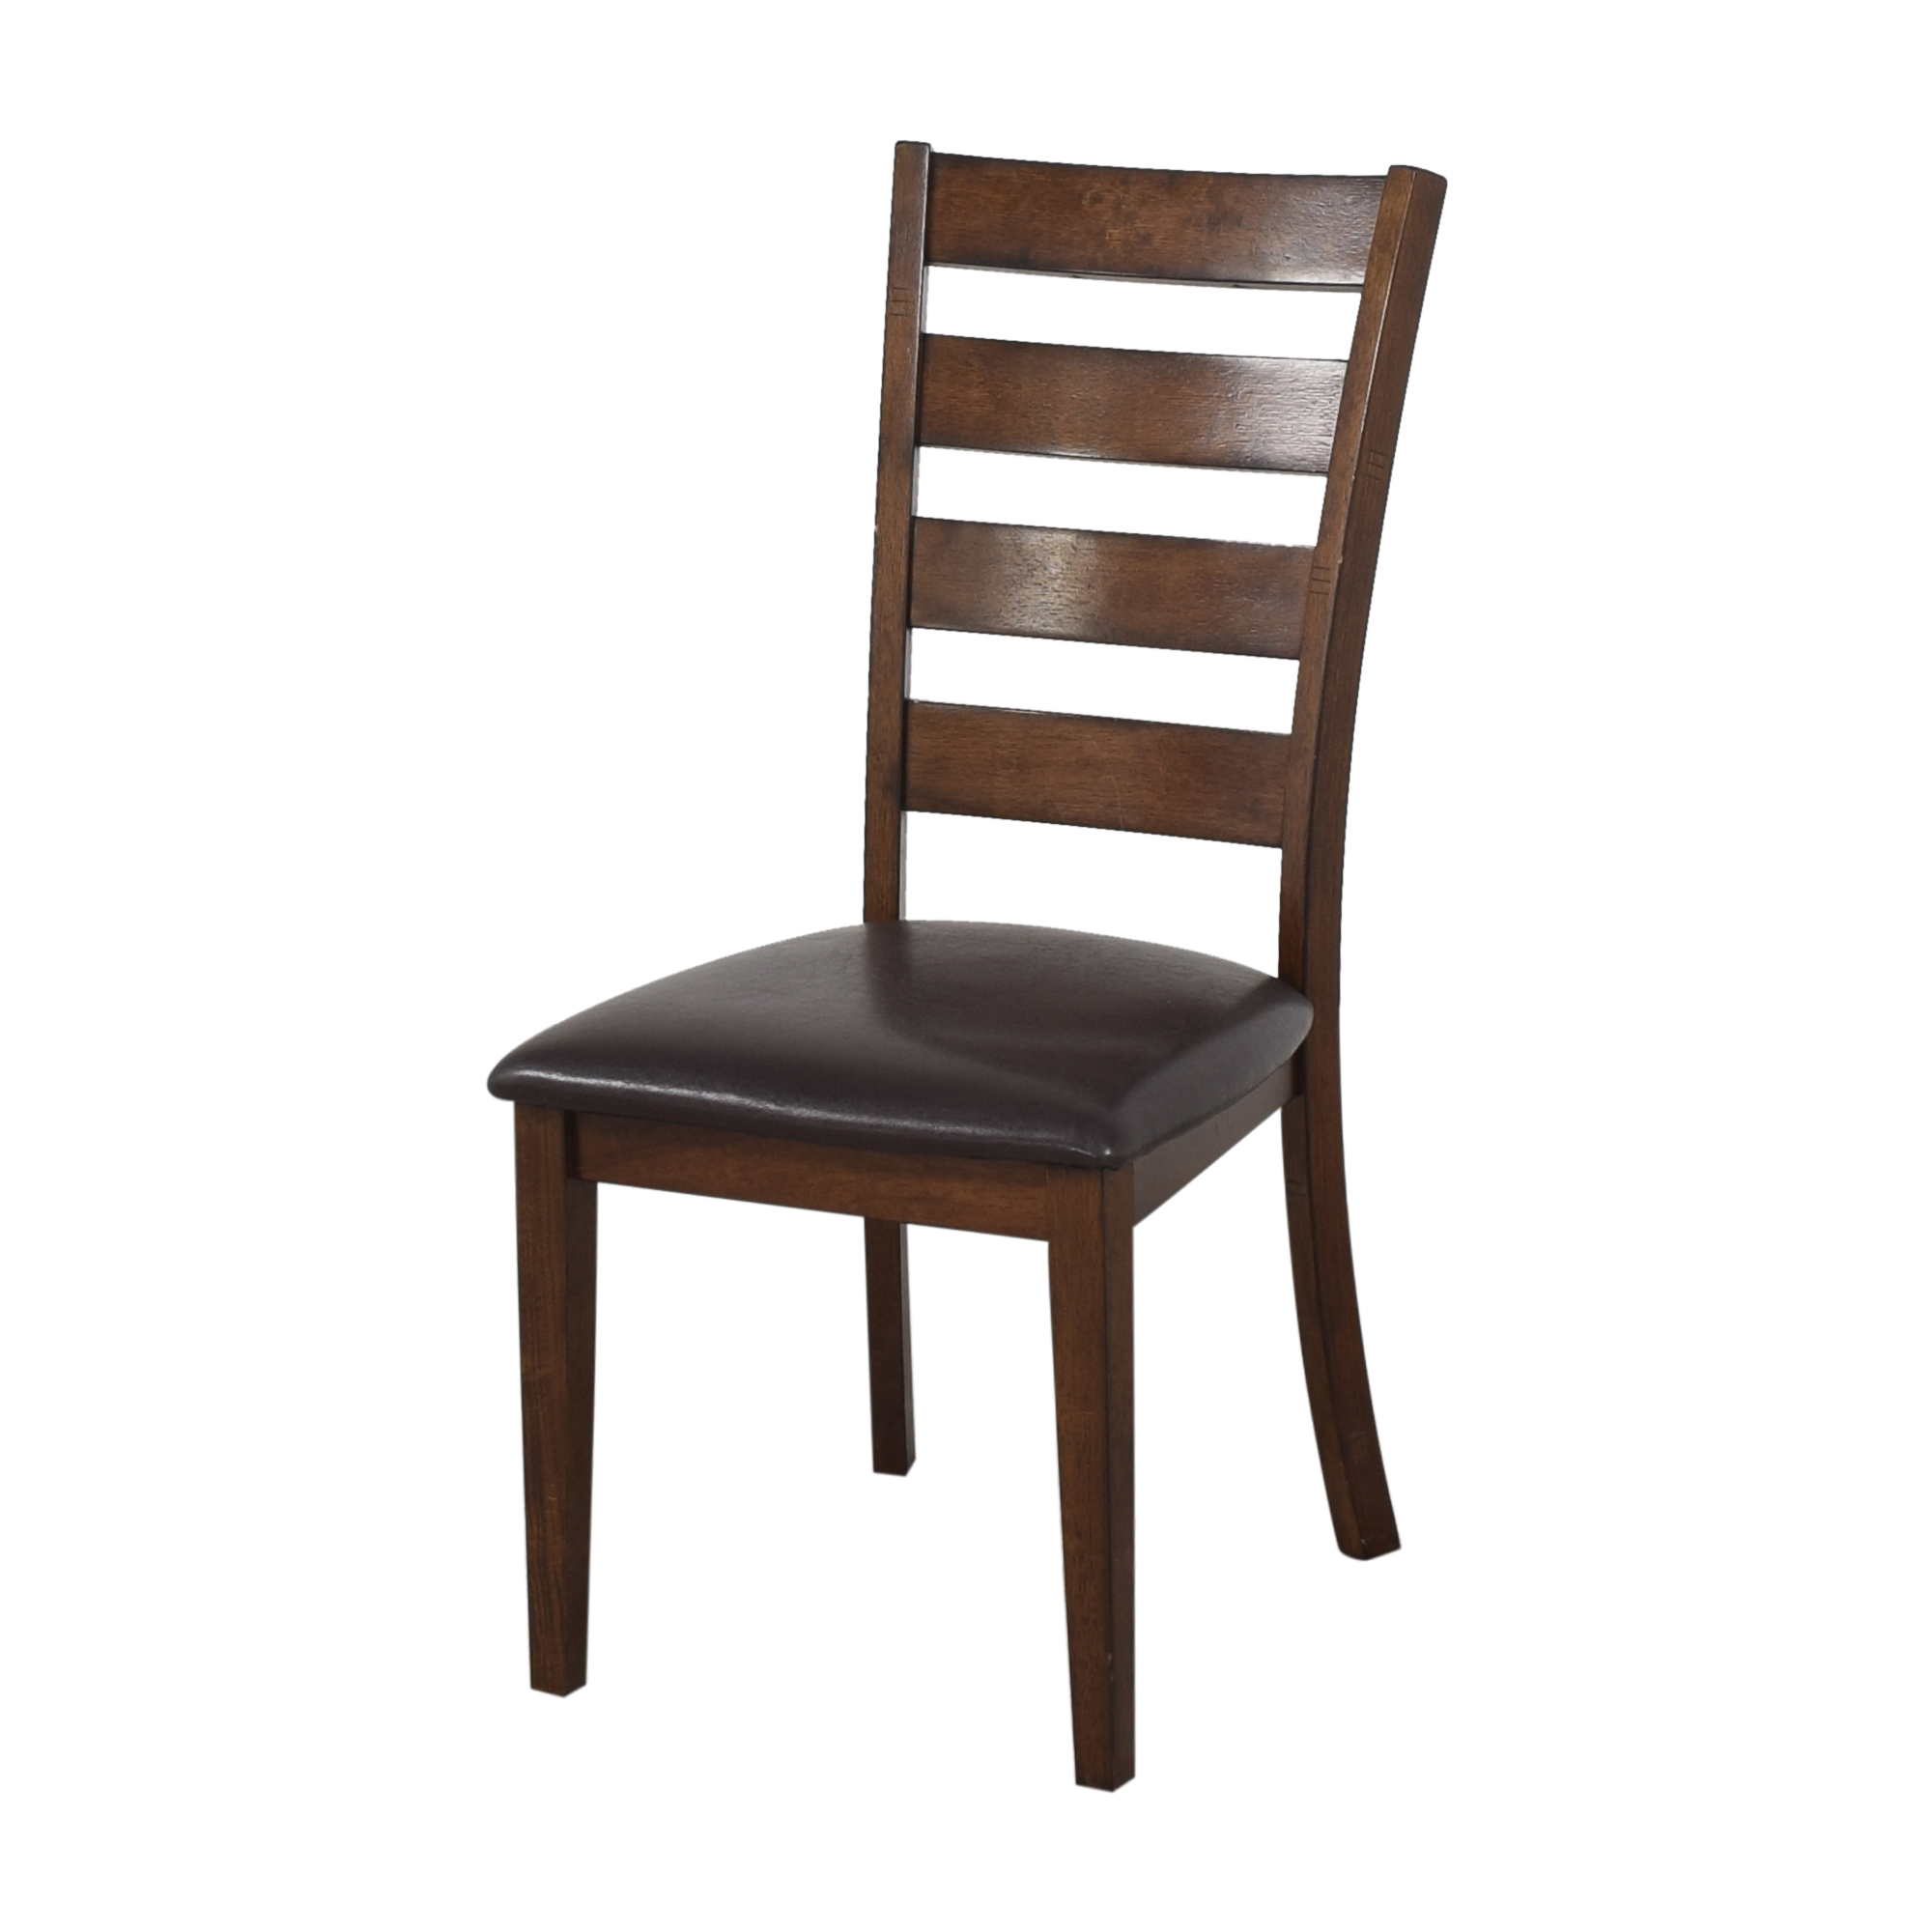 buy Raymour & Flanigan Ladder Back Dining Chairs Raymour & Flanigan